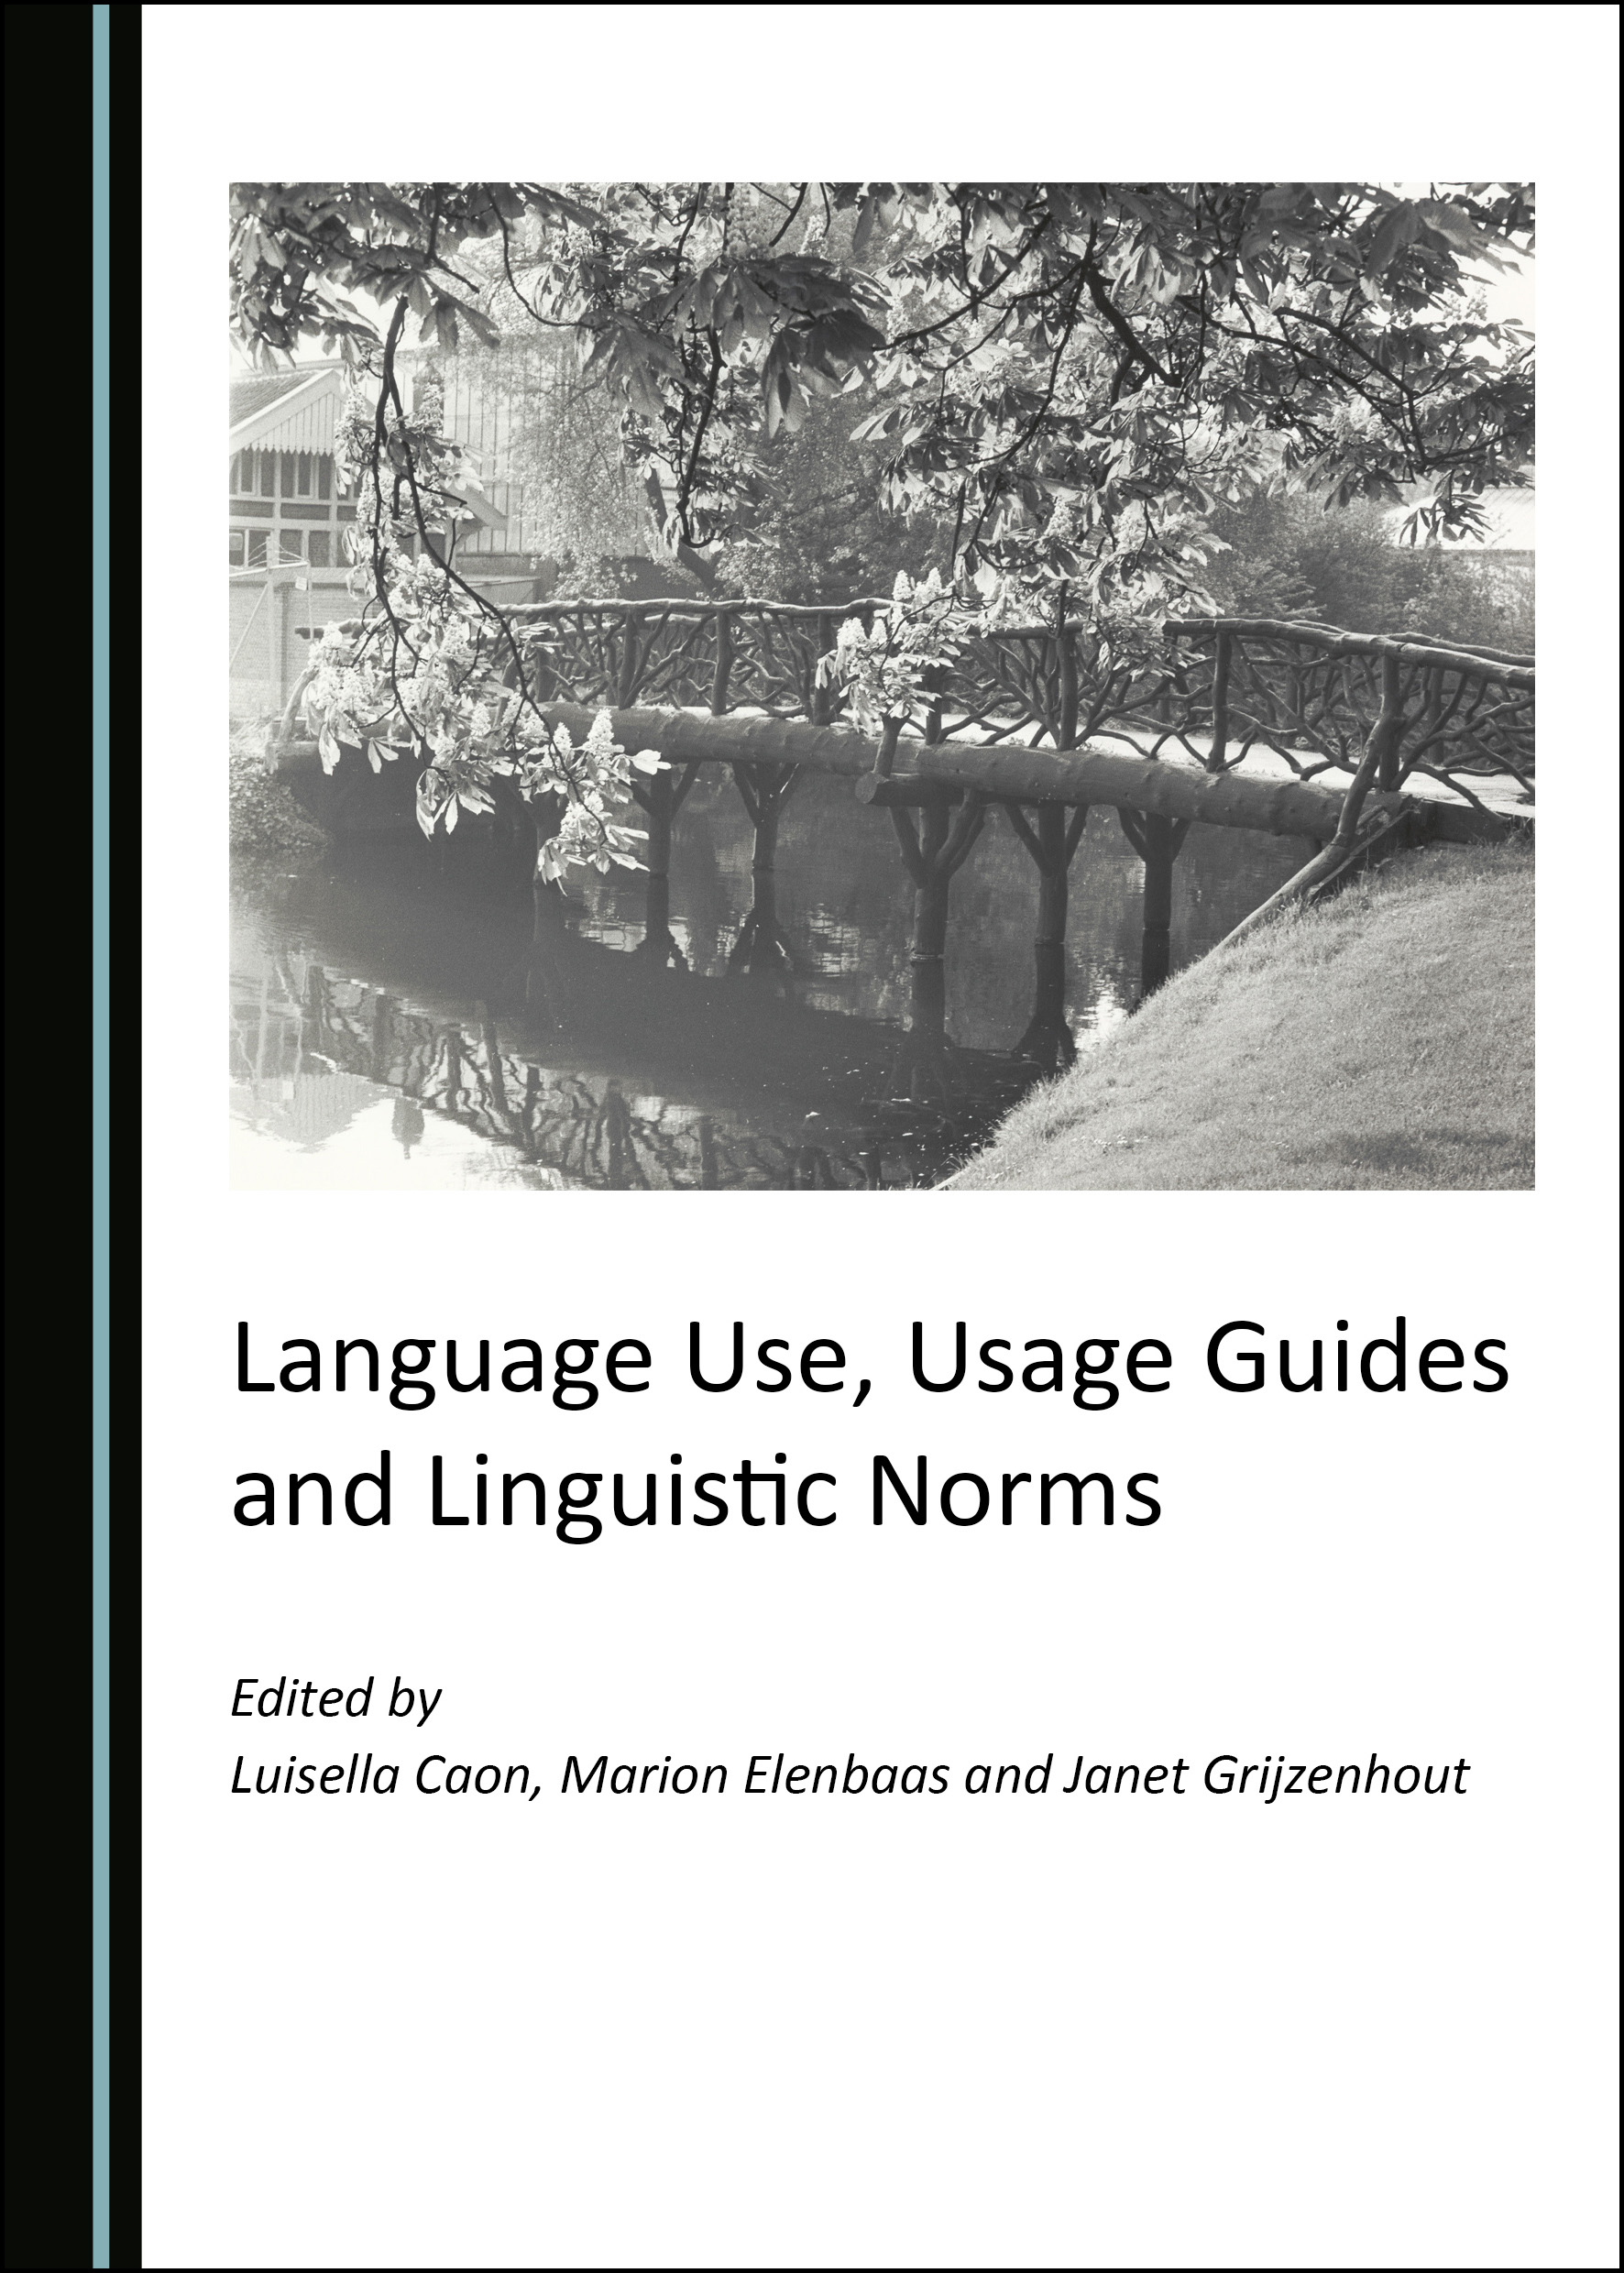 Language Use, Usage Guides and Linguistic Norms